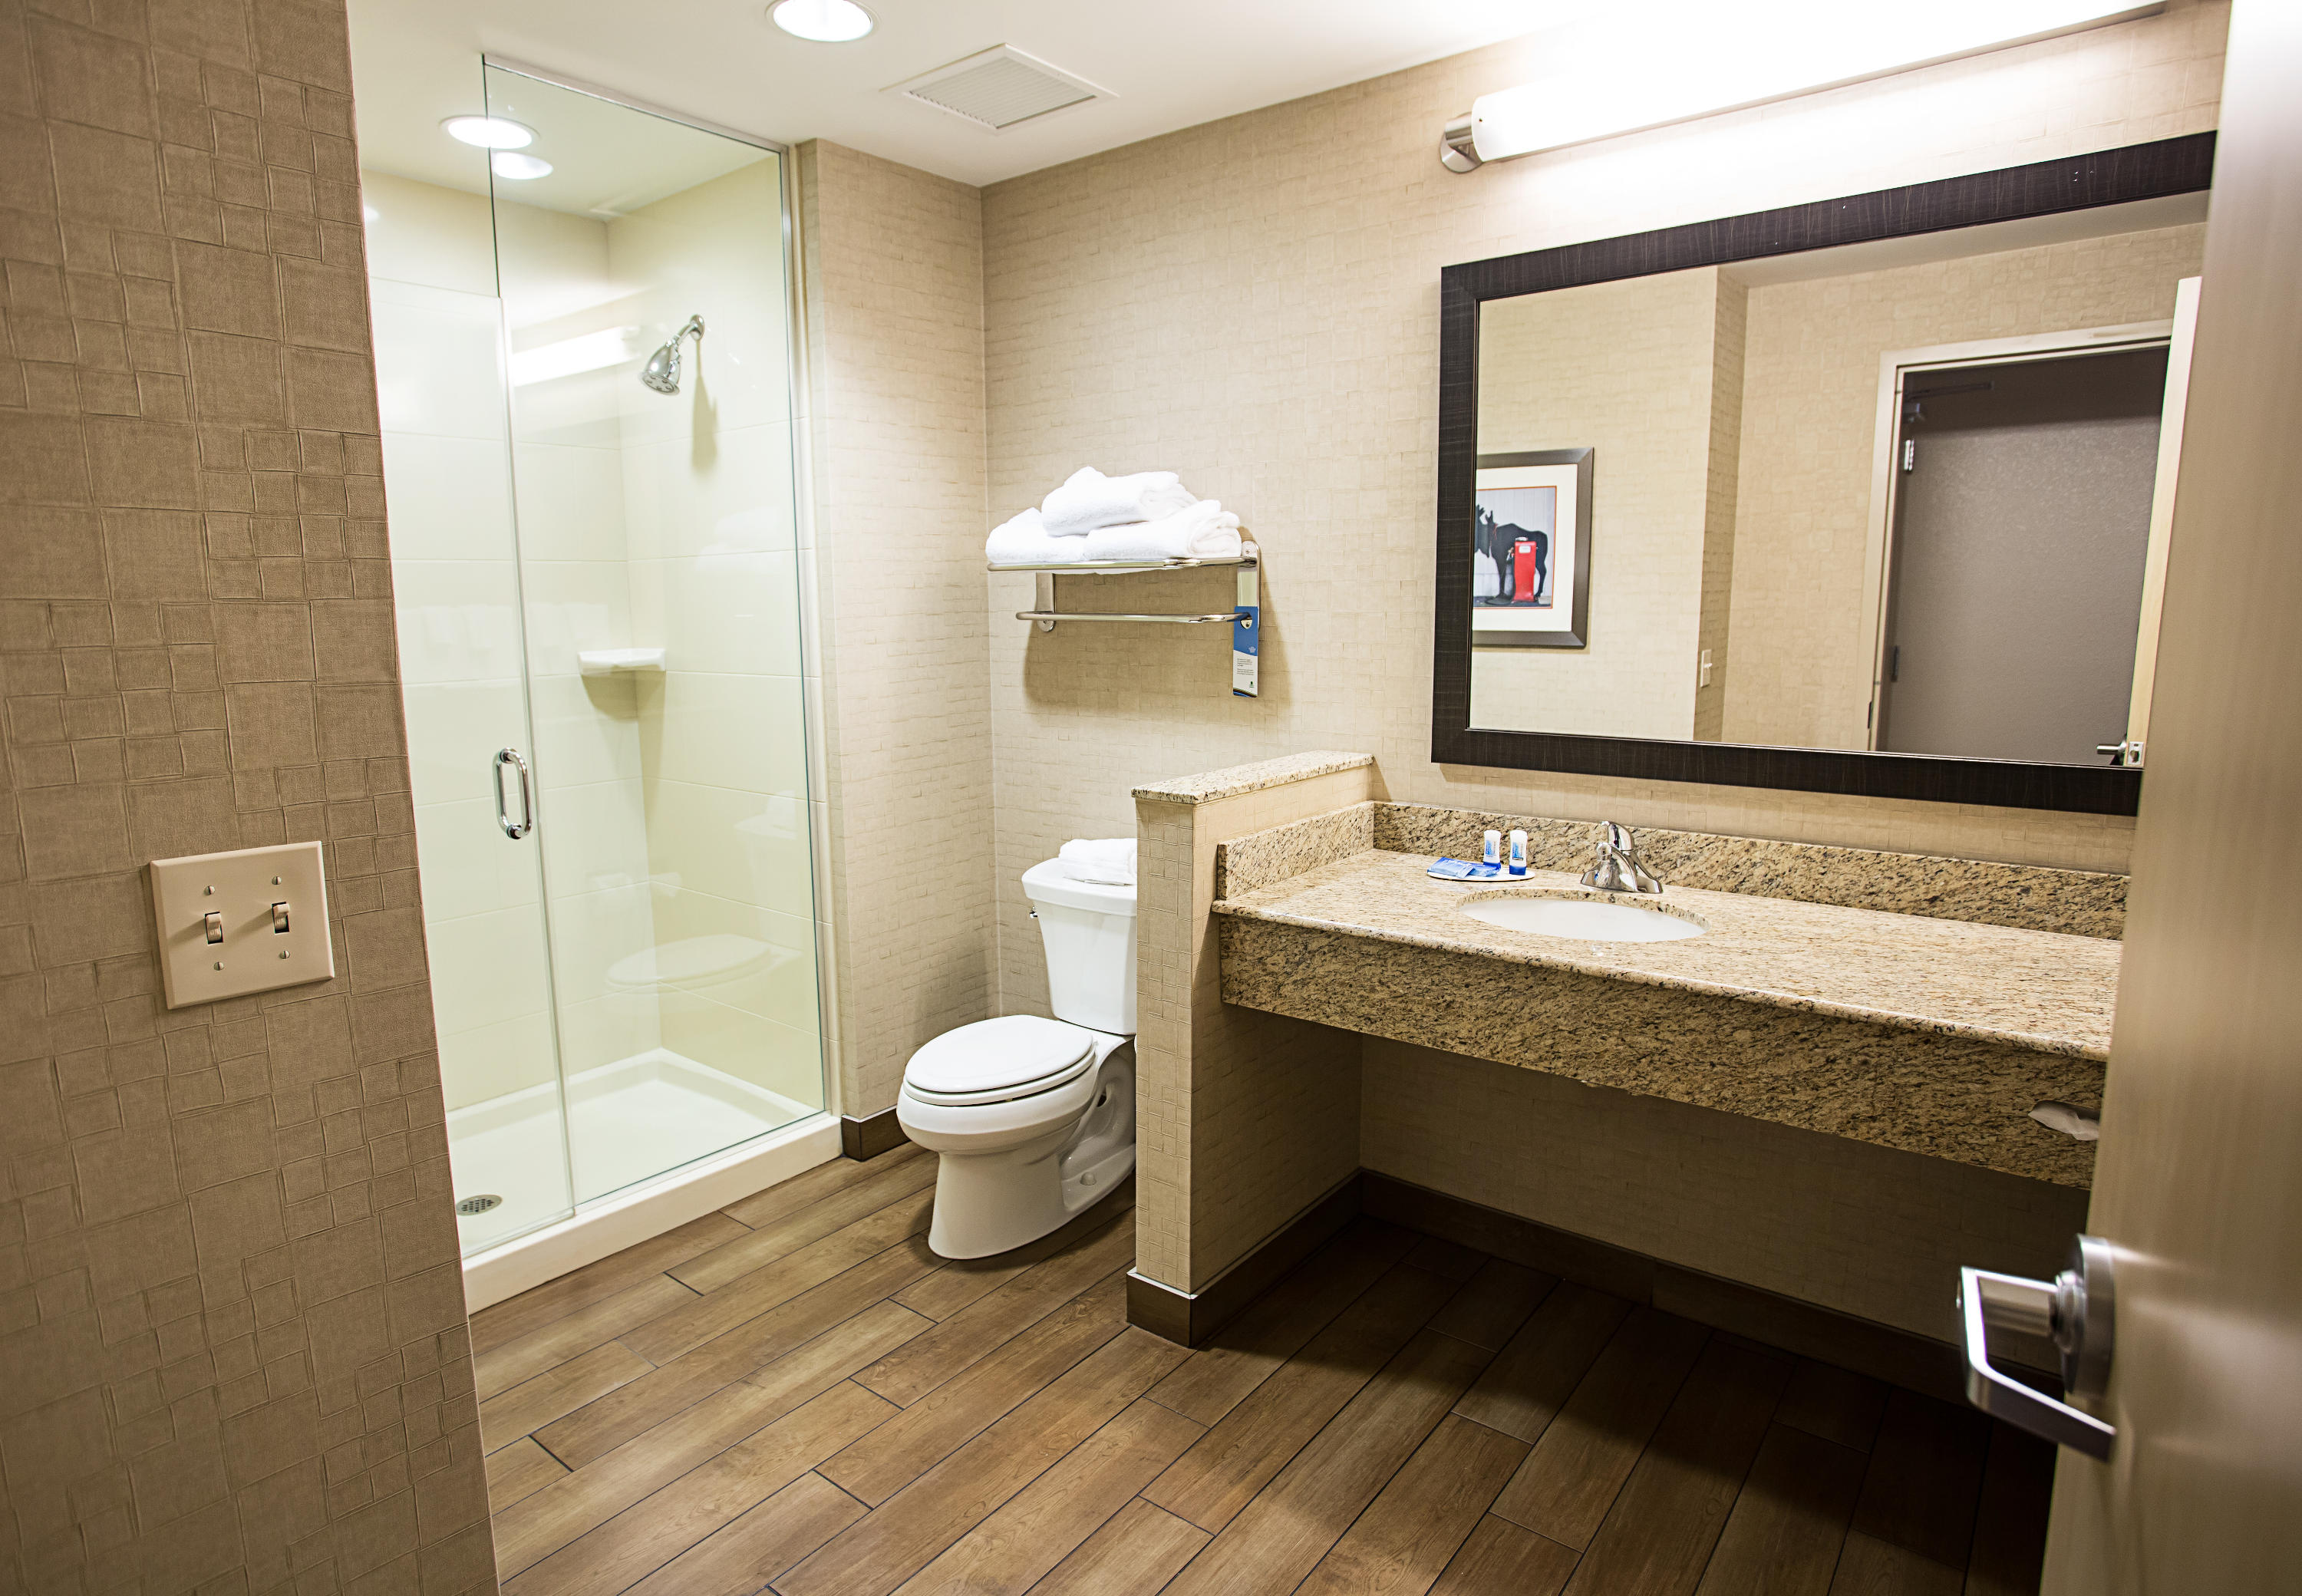 Fairfield Inn & Suites by Marriott Moscow image 9